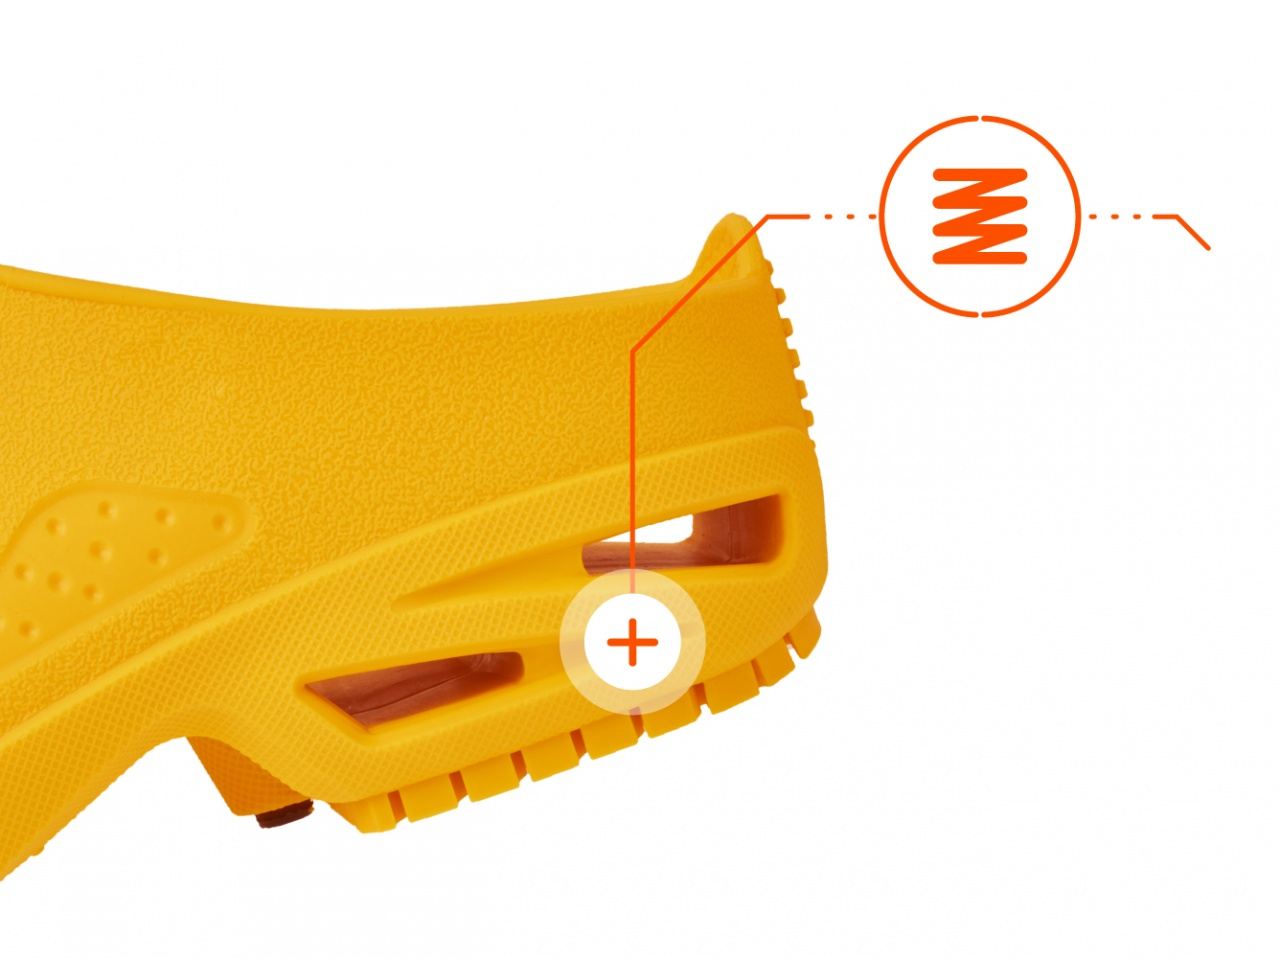 Yellow clogs with shock absorption